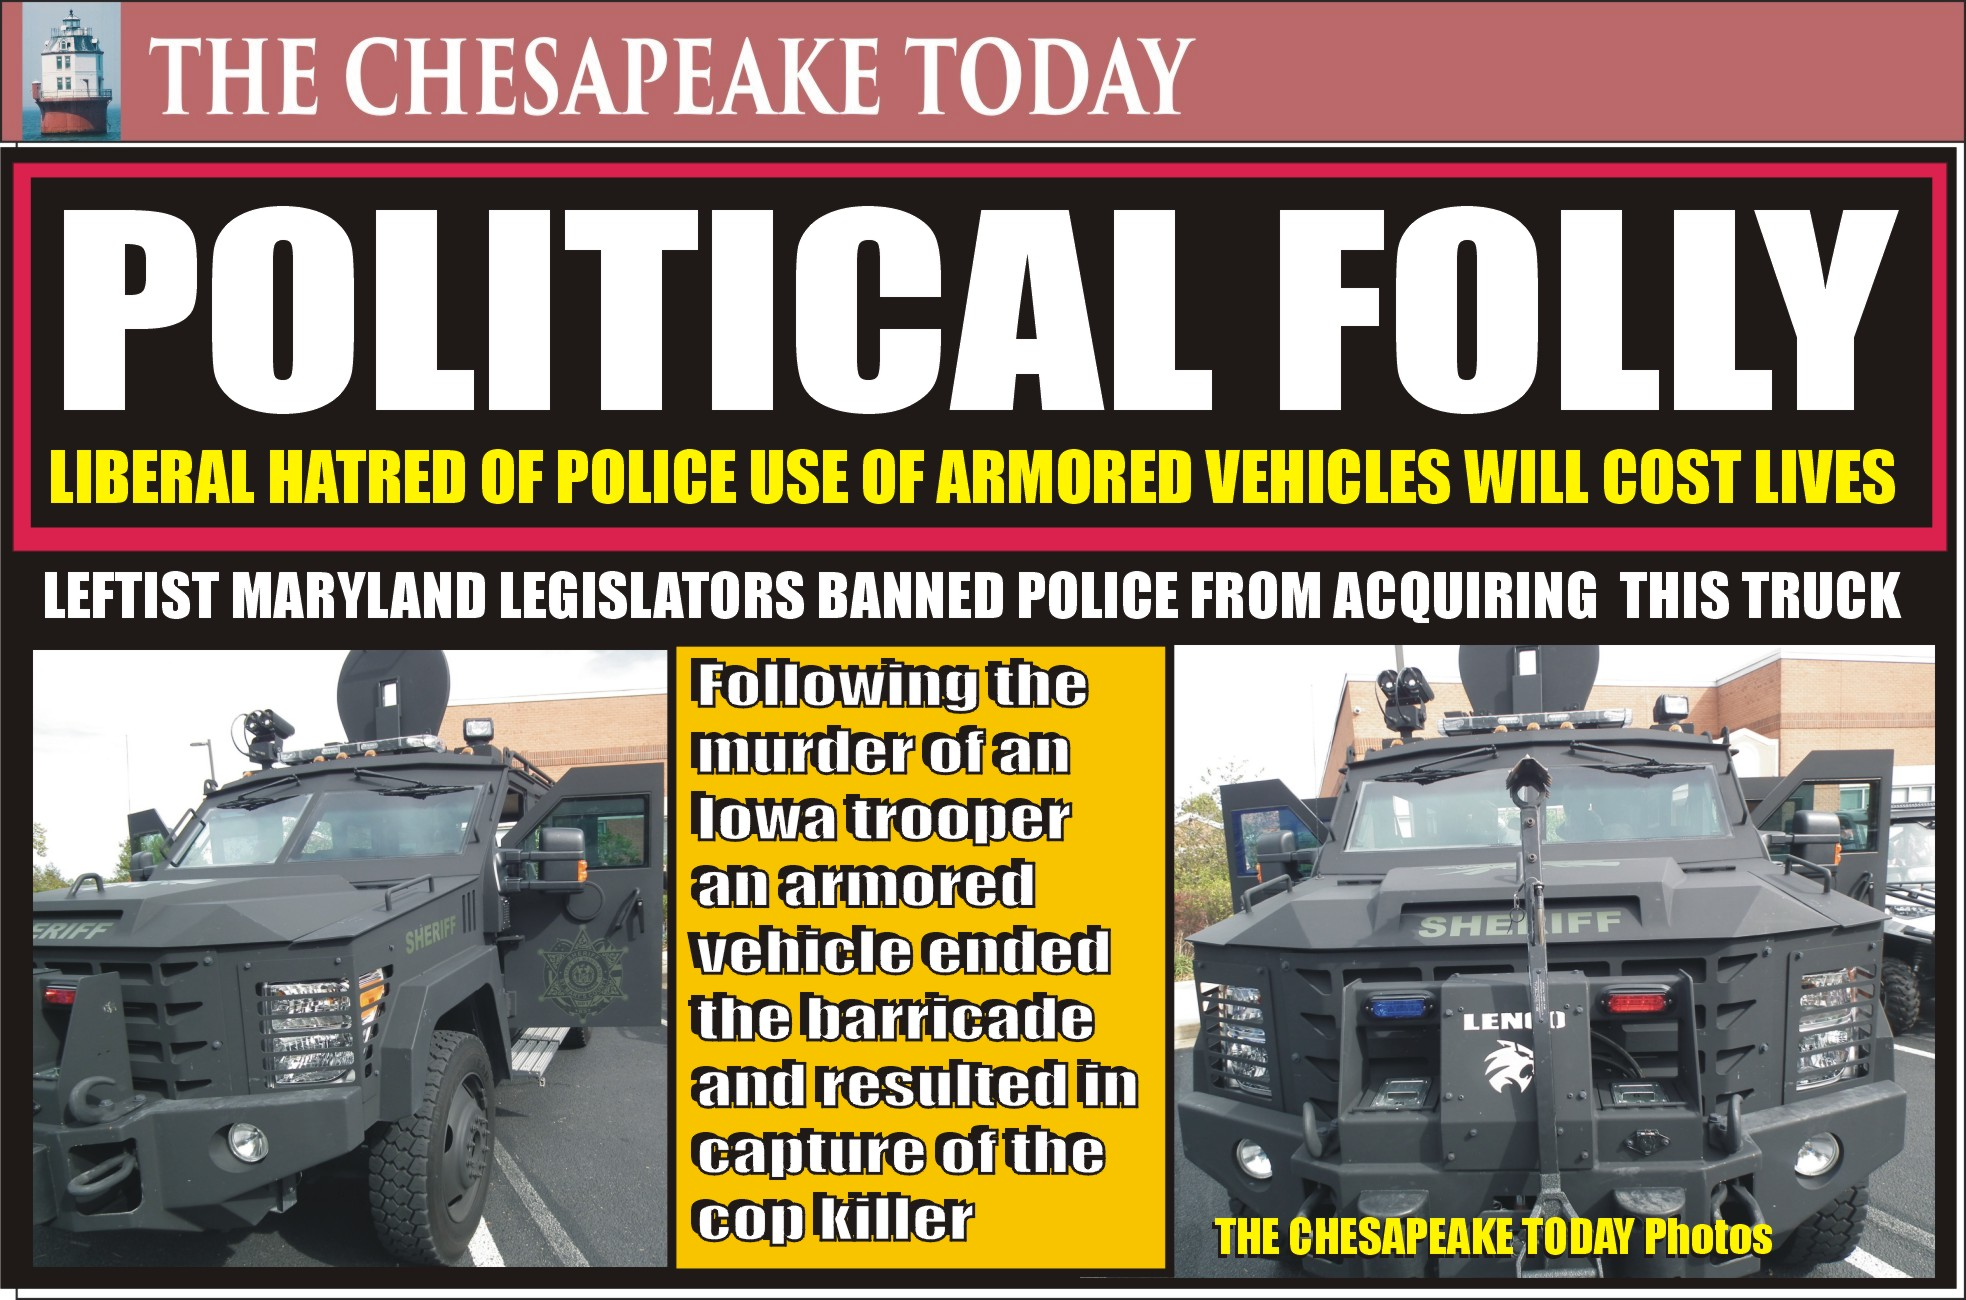 MILITARY-VEHICLES BANNED FOR POLICE: The Maryland General Assembly has enacted legislation that bans the acquisition of armored vehicles that are used to save lives; Leftist Democrat Delegate Brian Crosby voted to strip police of protections